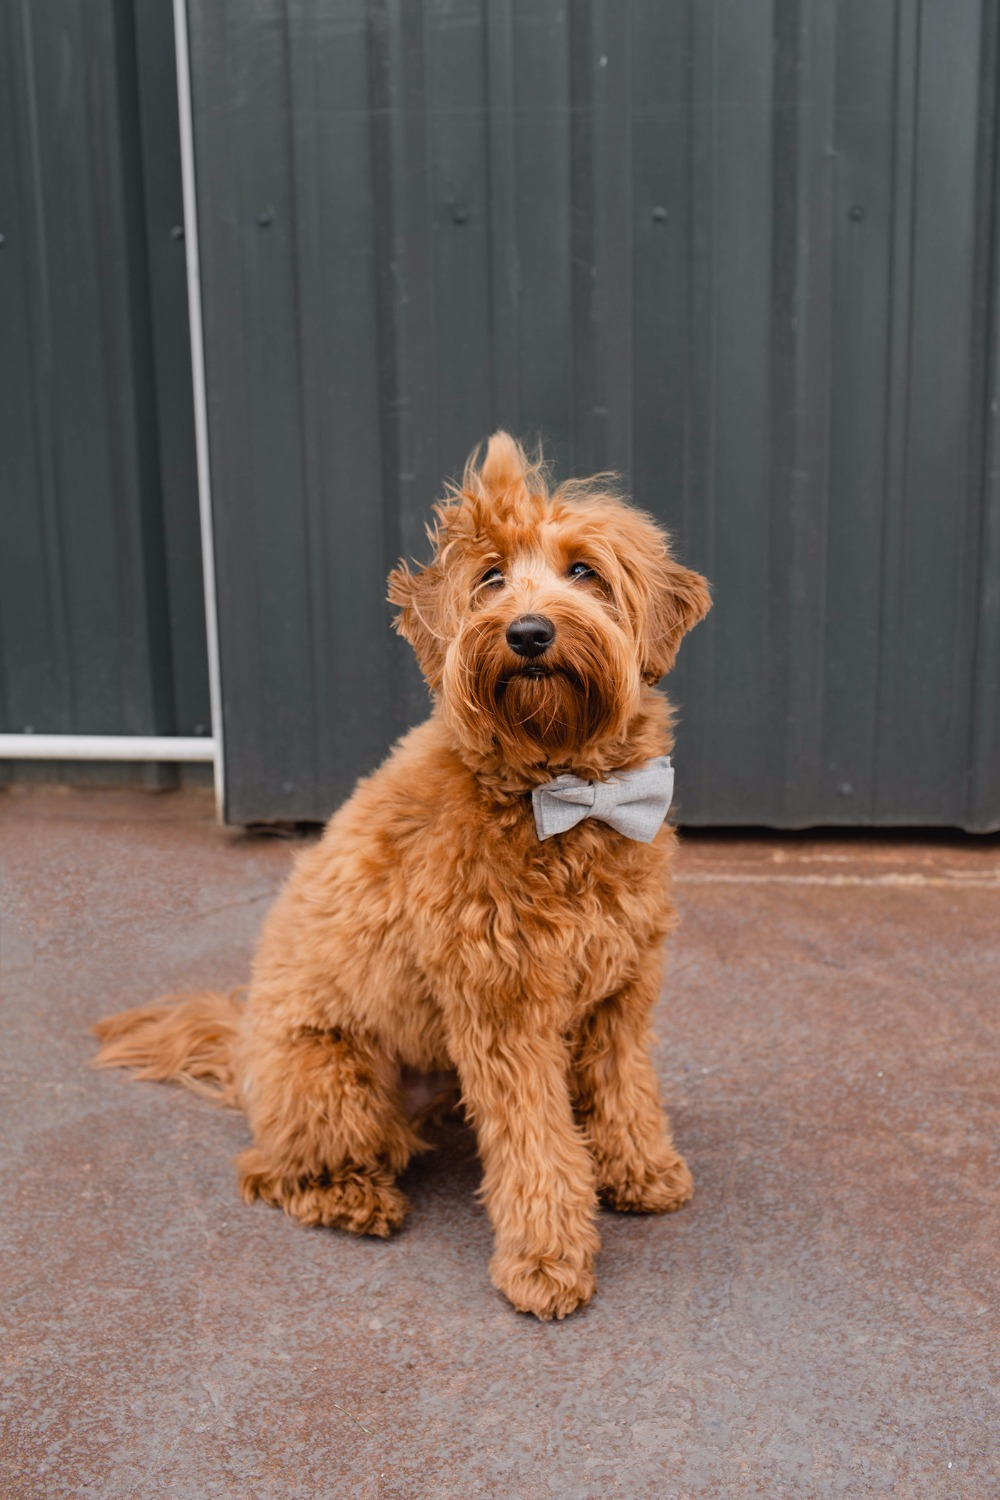 Cute wedding pup with bowtie